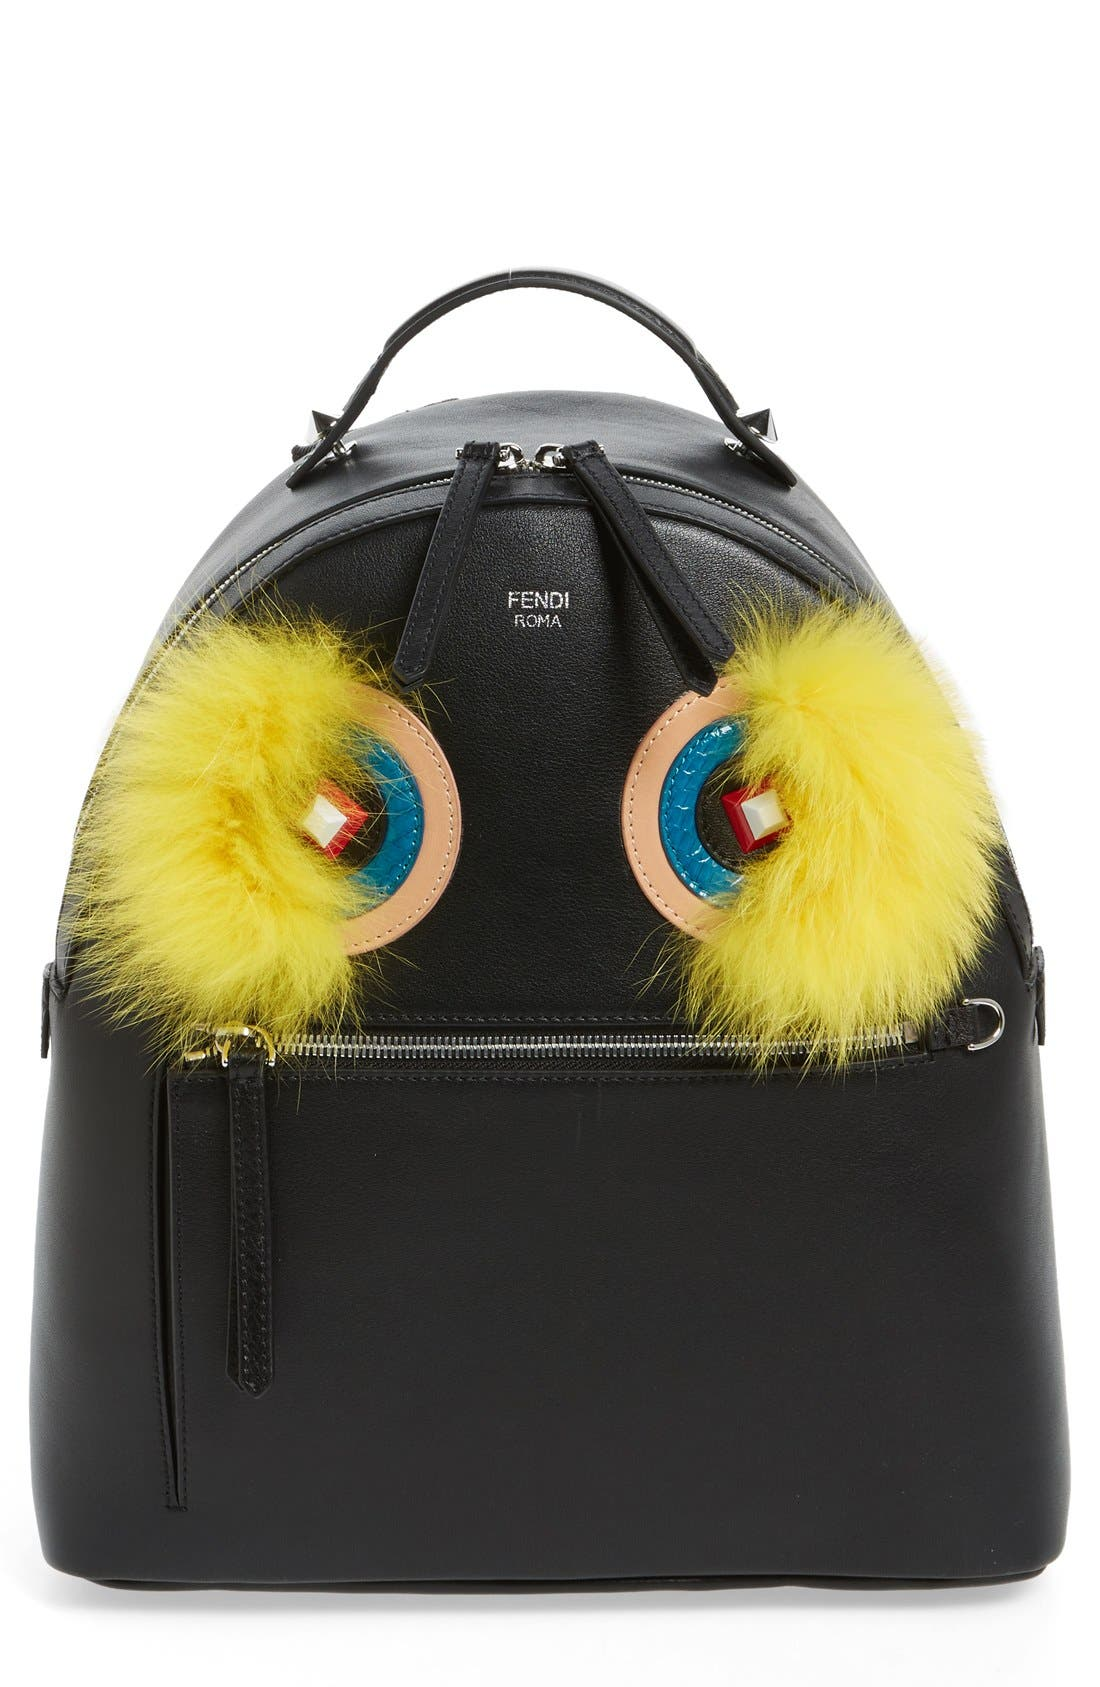 Alternate Image 1 Selected - Fendi 'Monster' Leather Backpack with Genuine Fox Fur & Snakeskin Trim